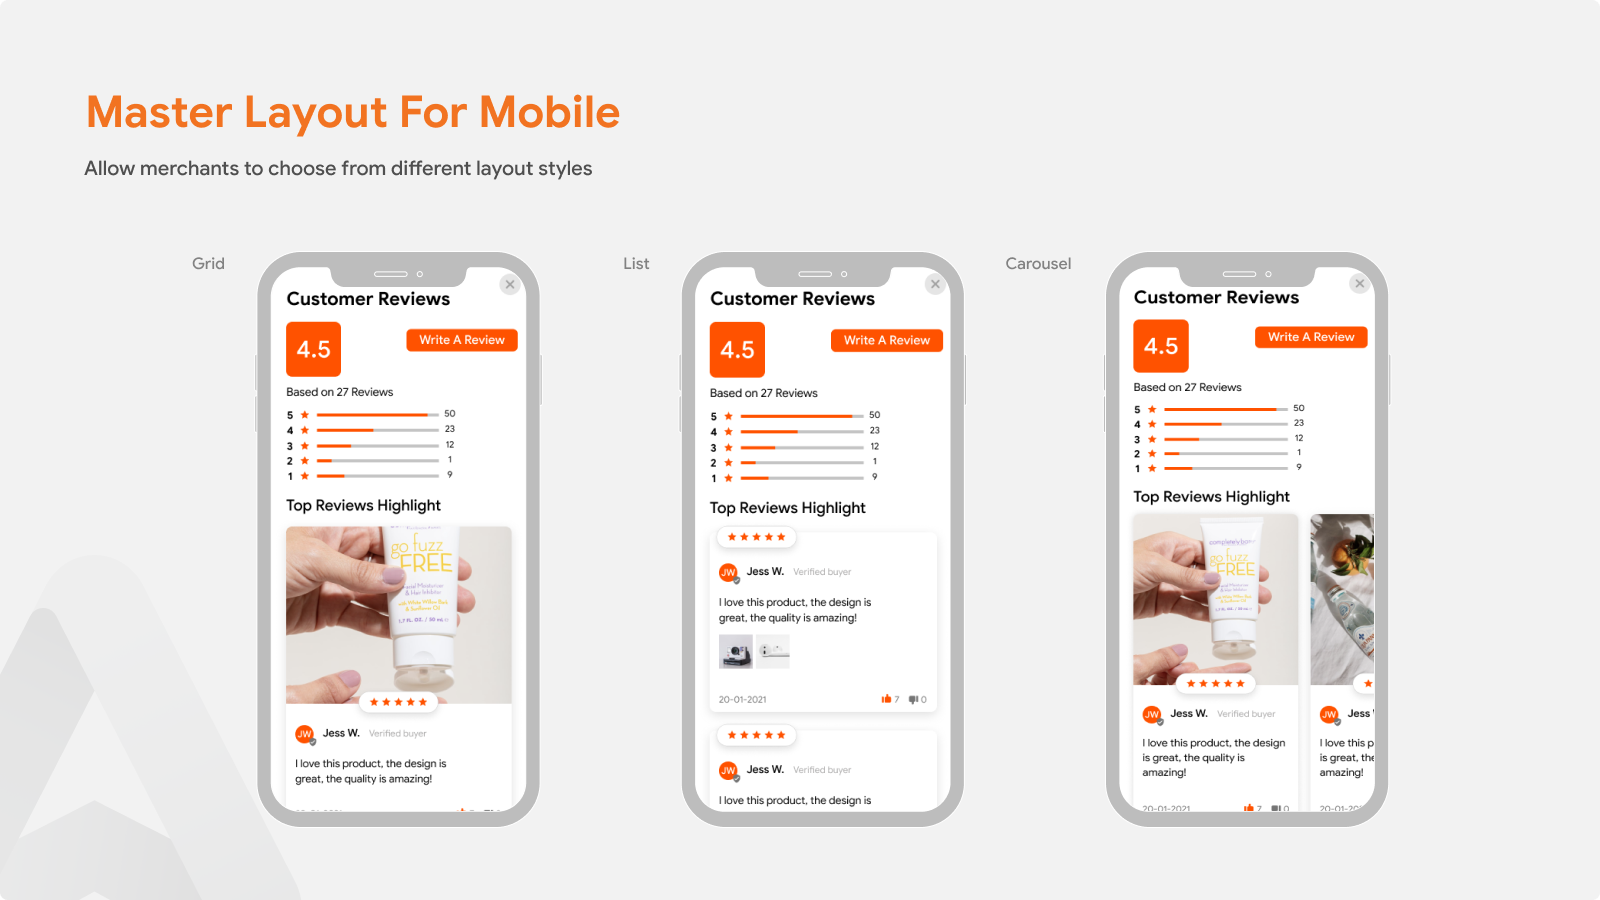 Product Reviews App  For Master Layout For Mobile